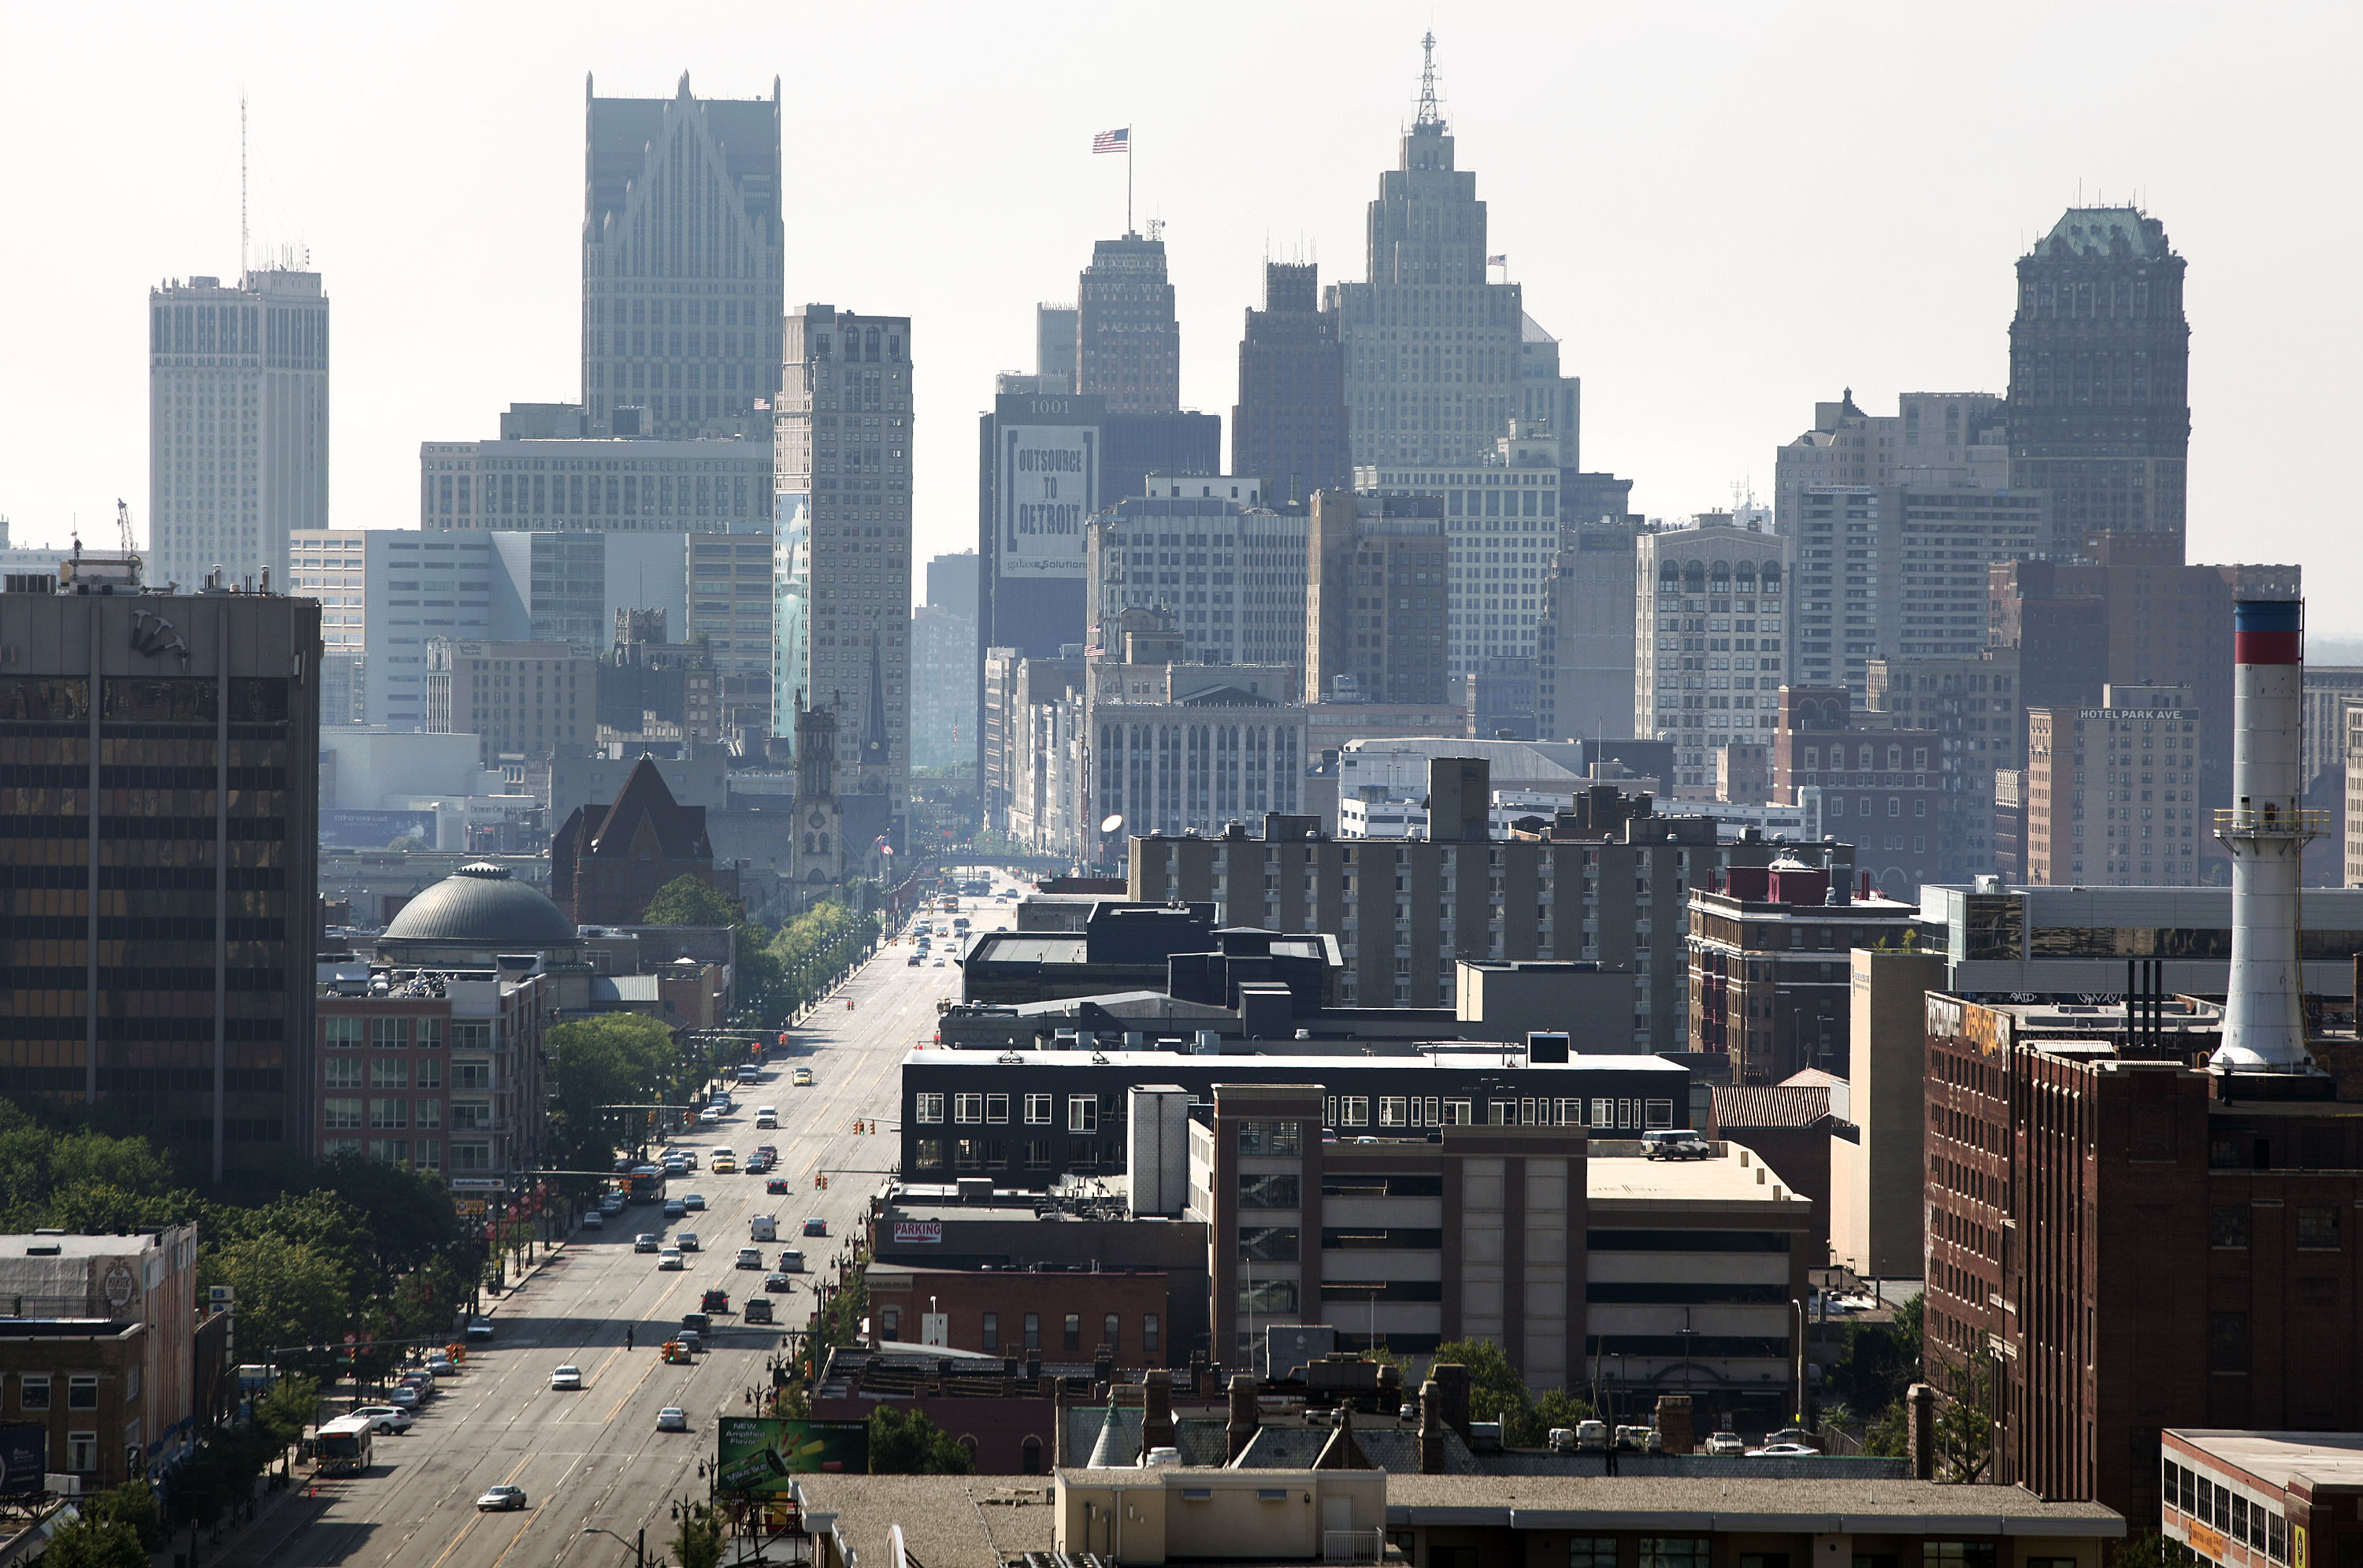 A view of Downtown Detroit on July 19, 2013.